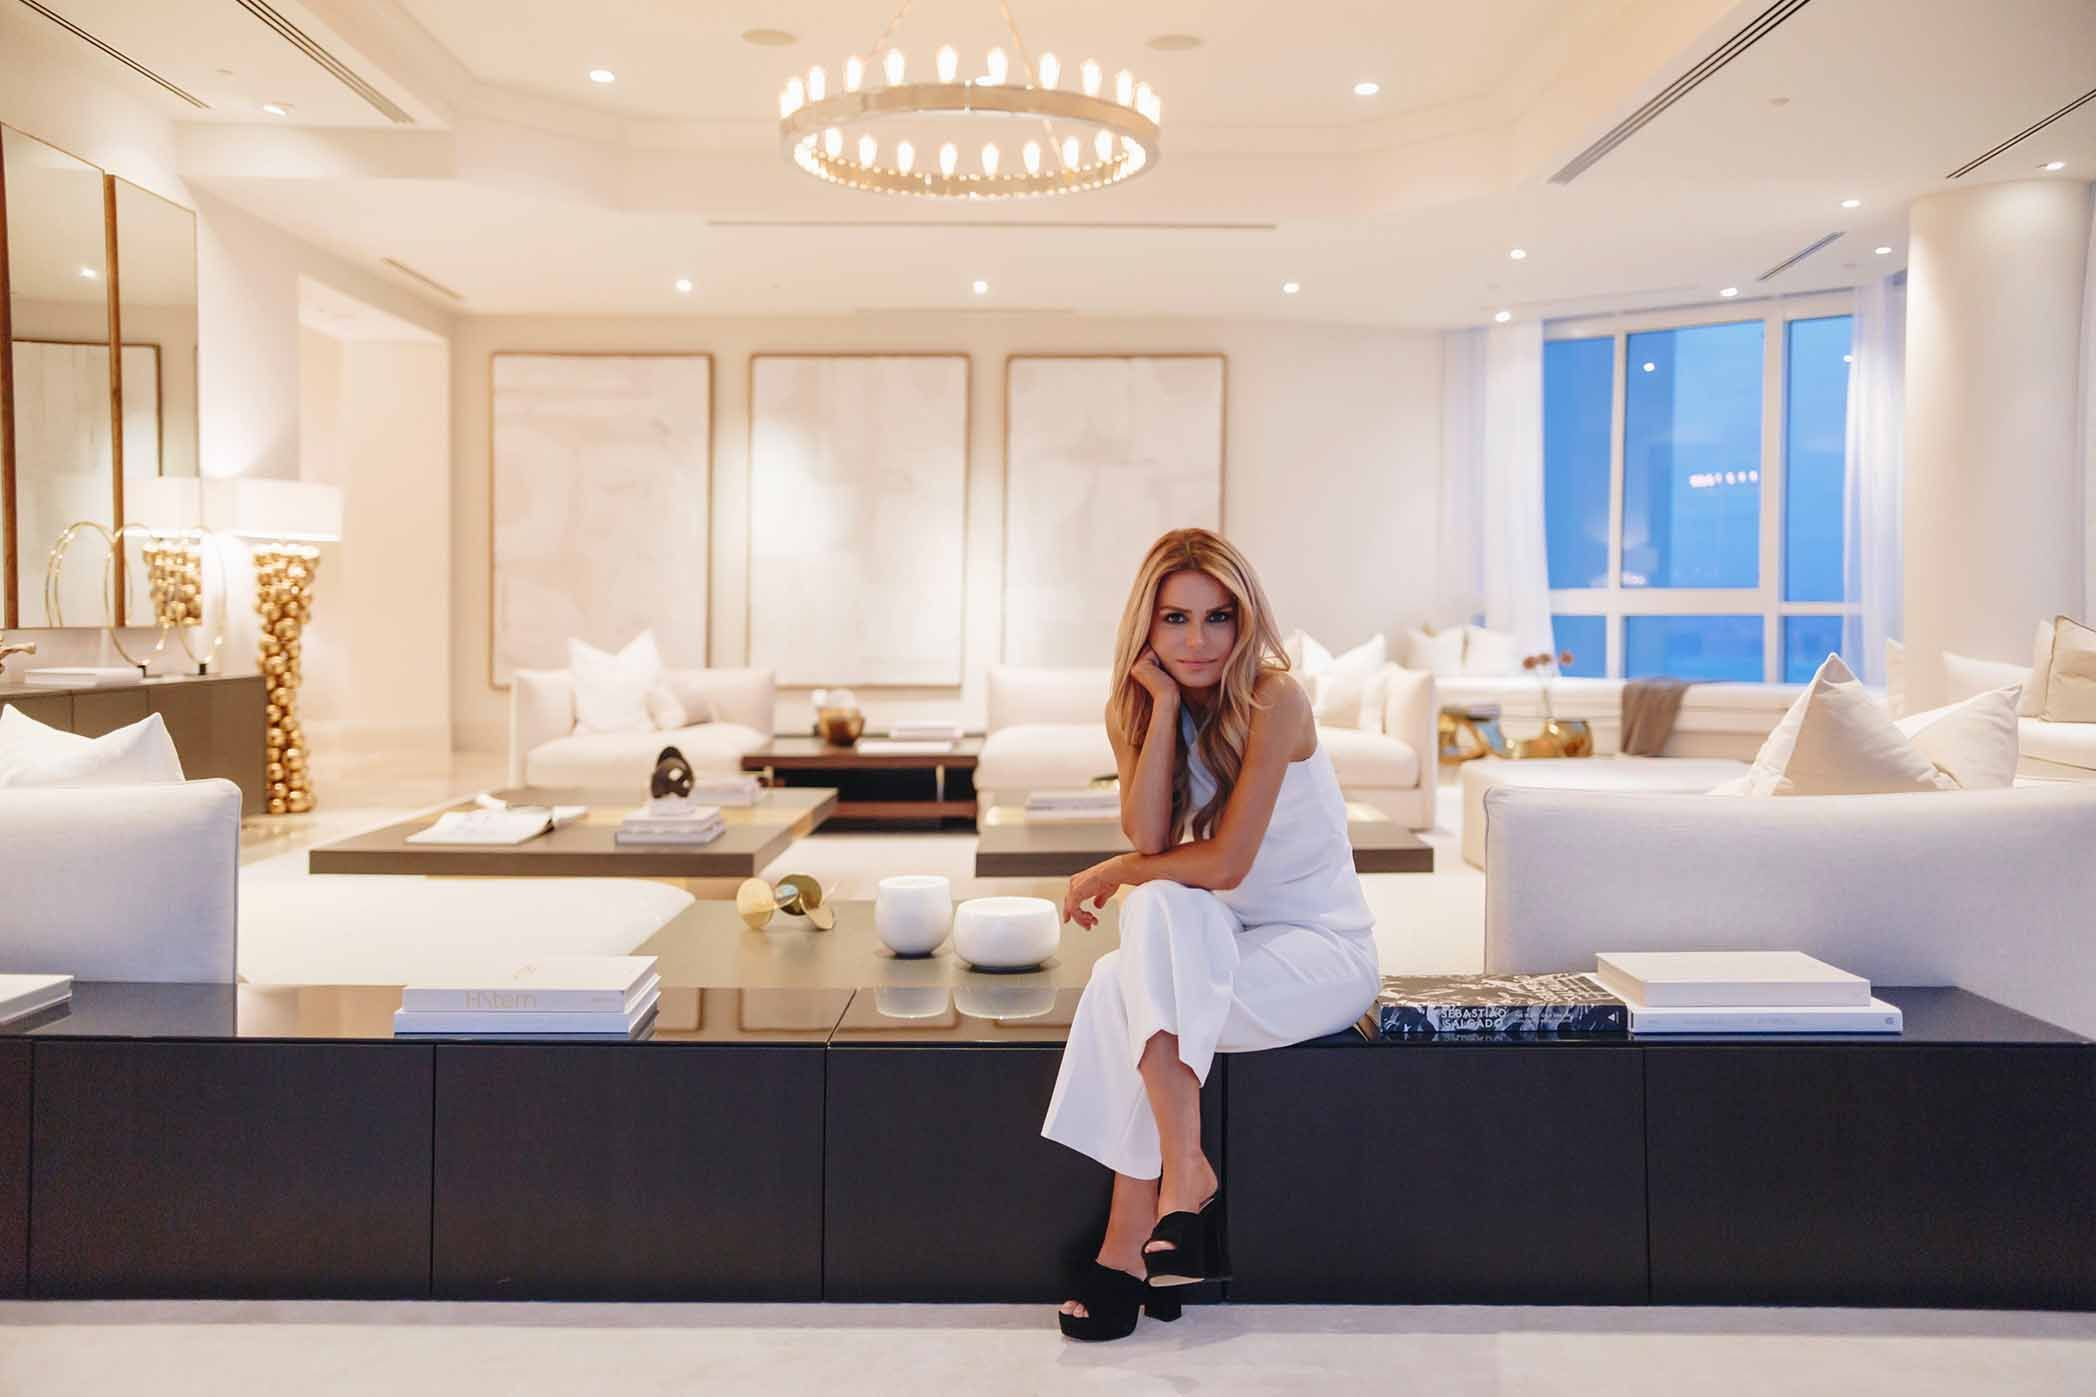 Home Design And Deko Shopping Decorating Tips From A Celebrity Home Stager - Cheryl Eisen Interview